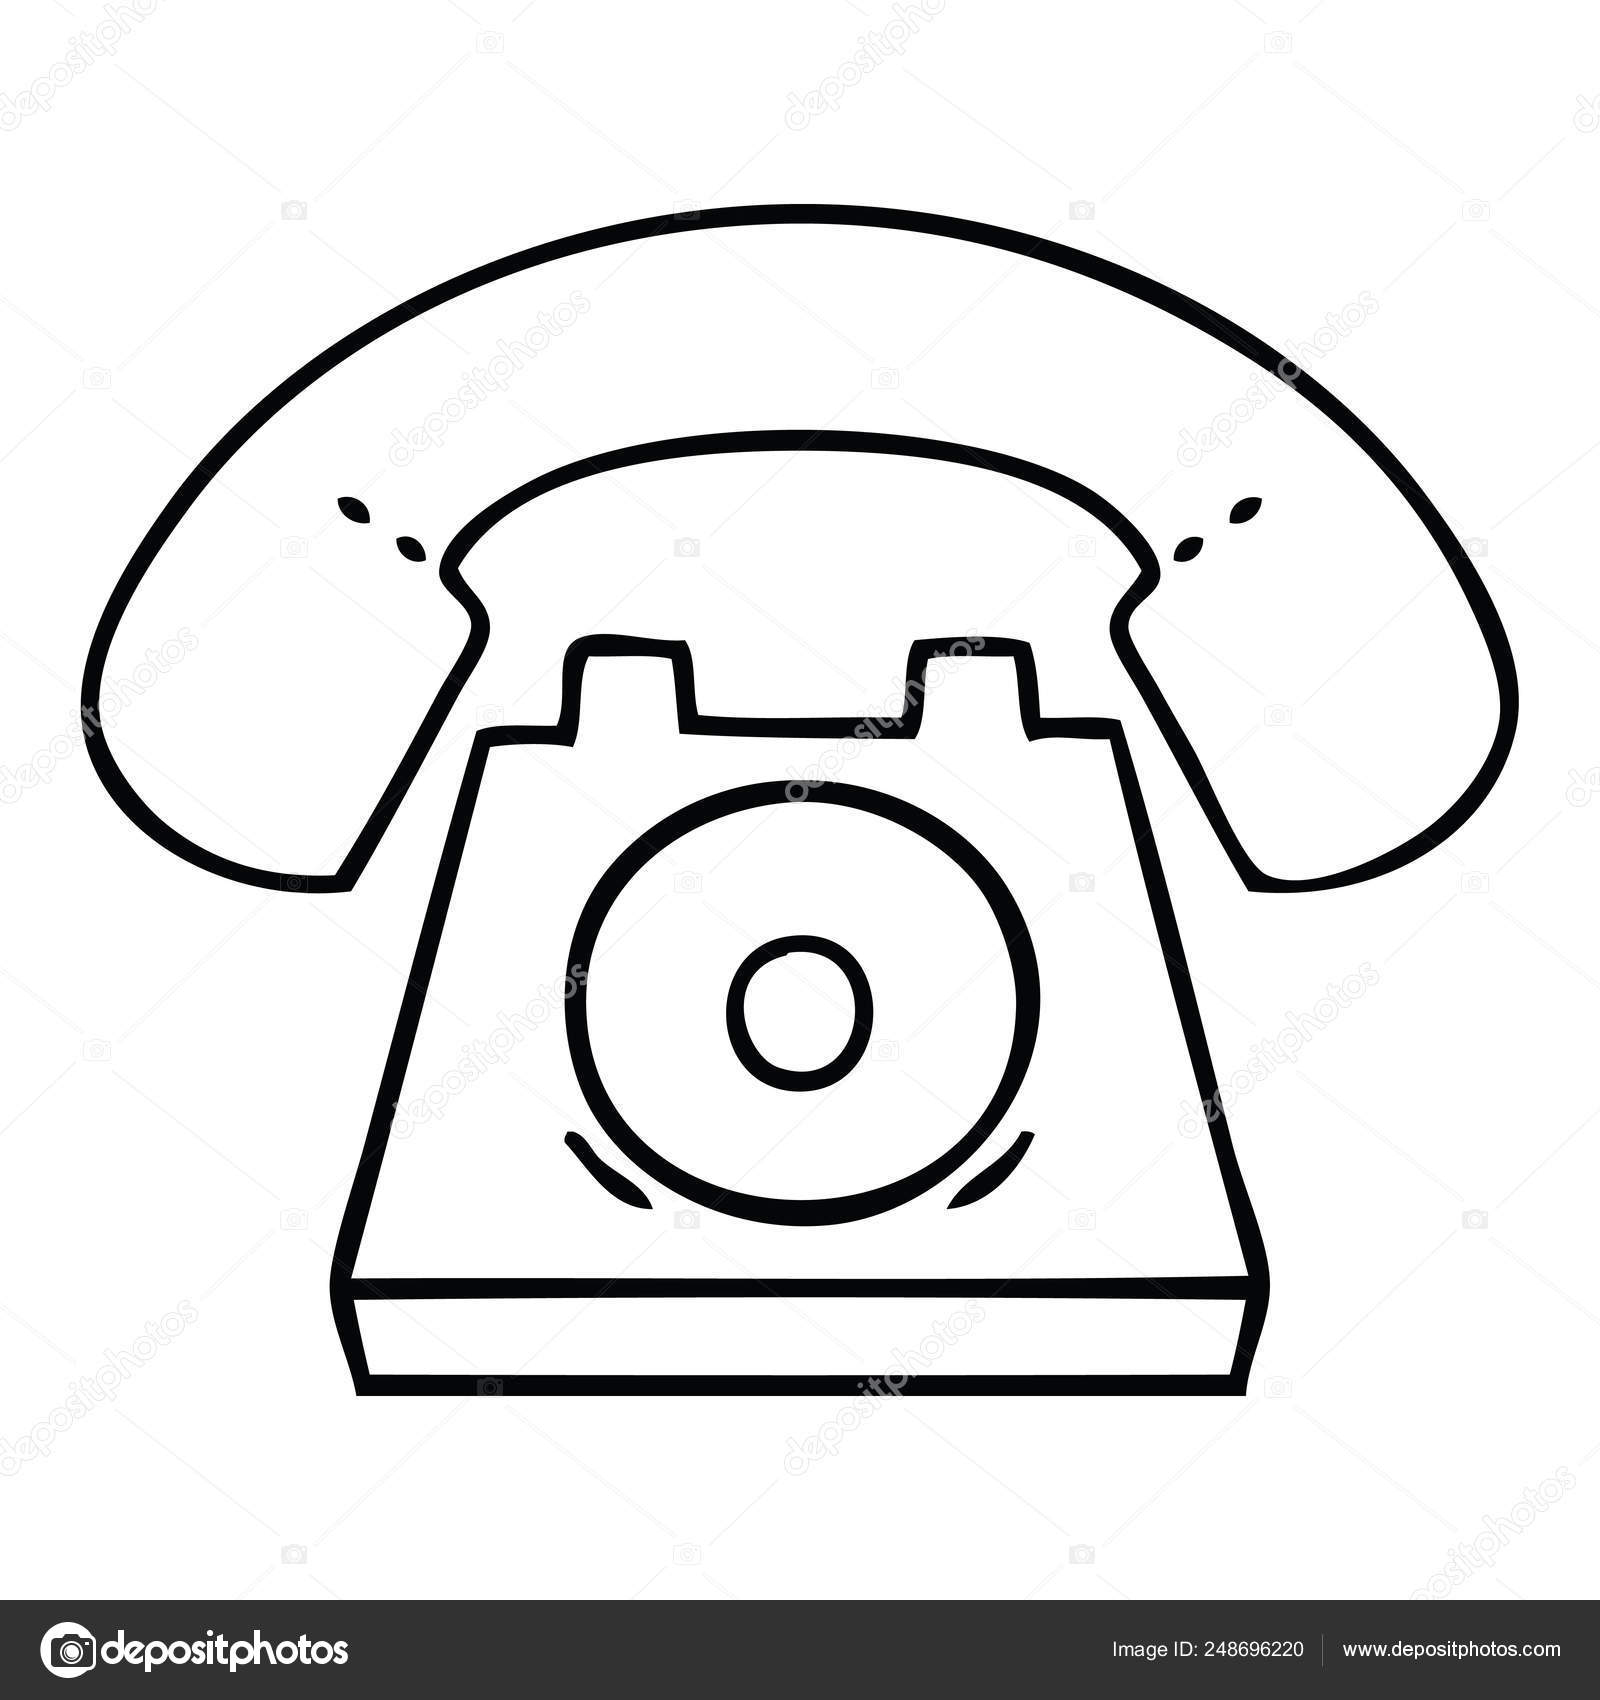 hight resolution of line drawing cartoon old telephone stock vector